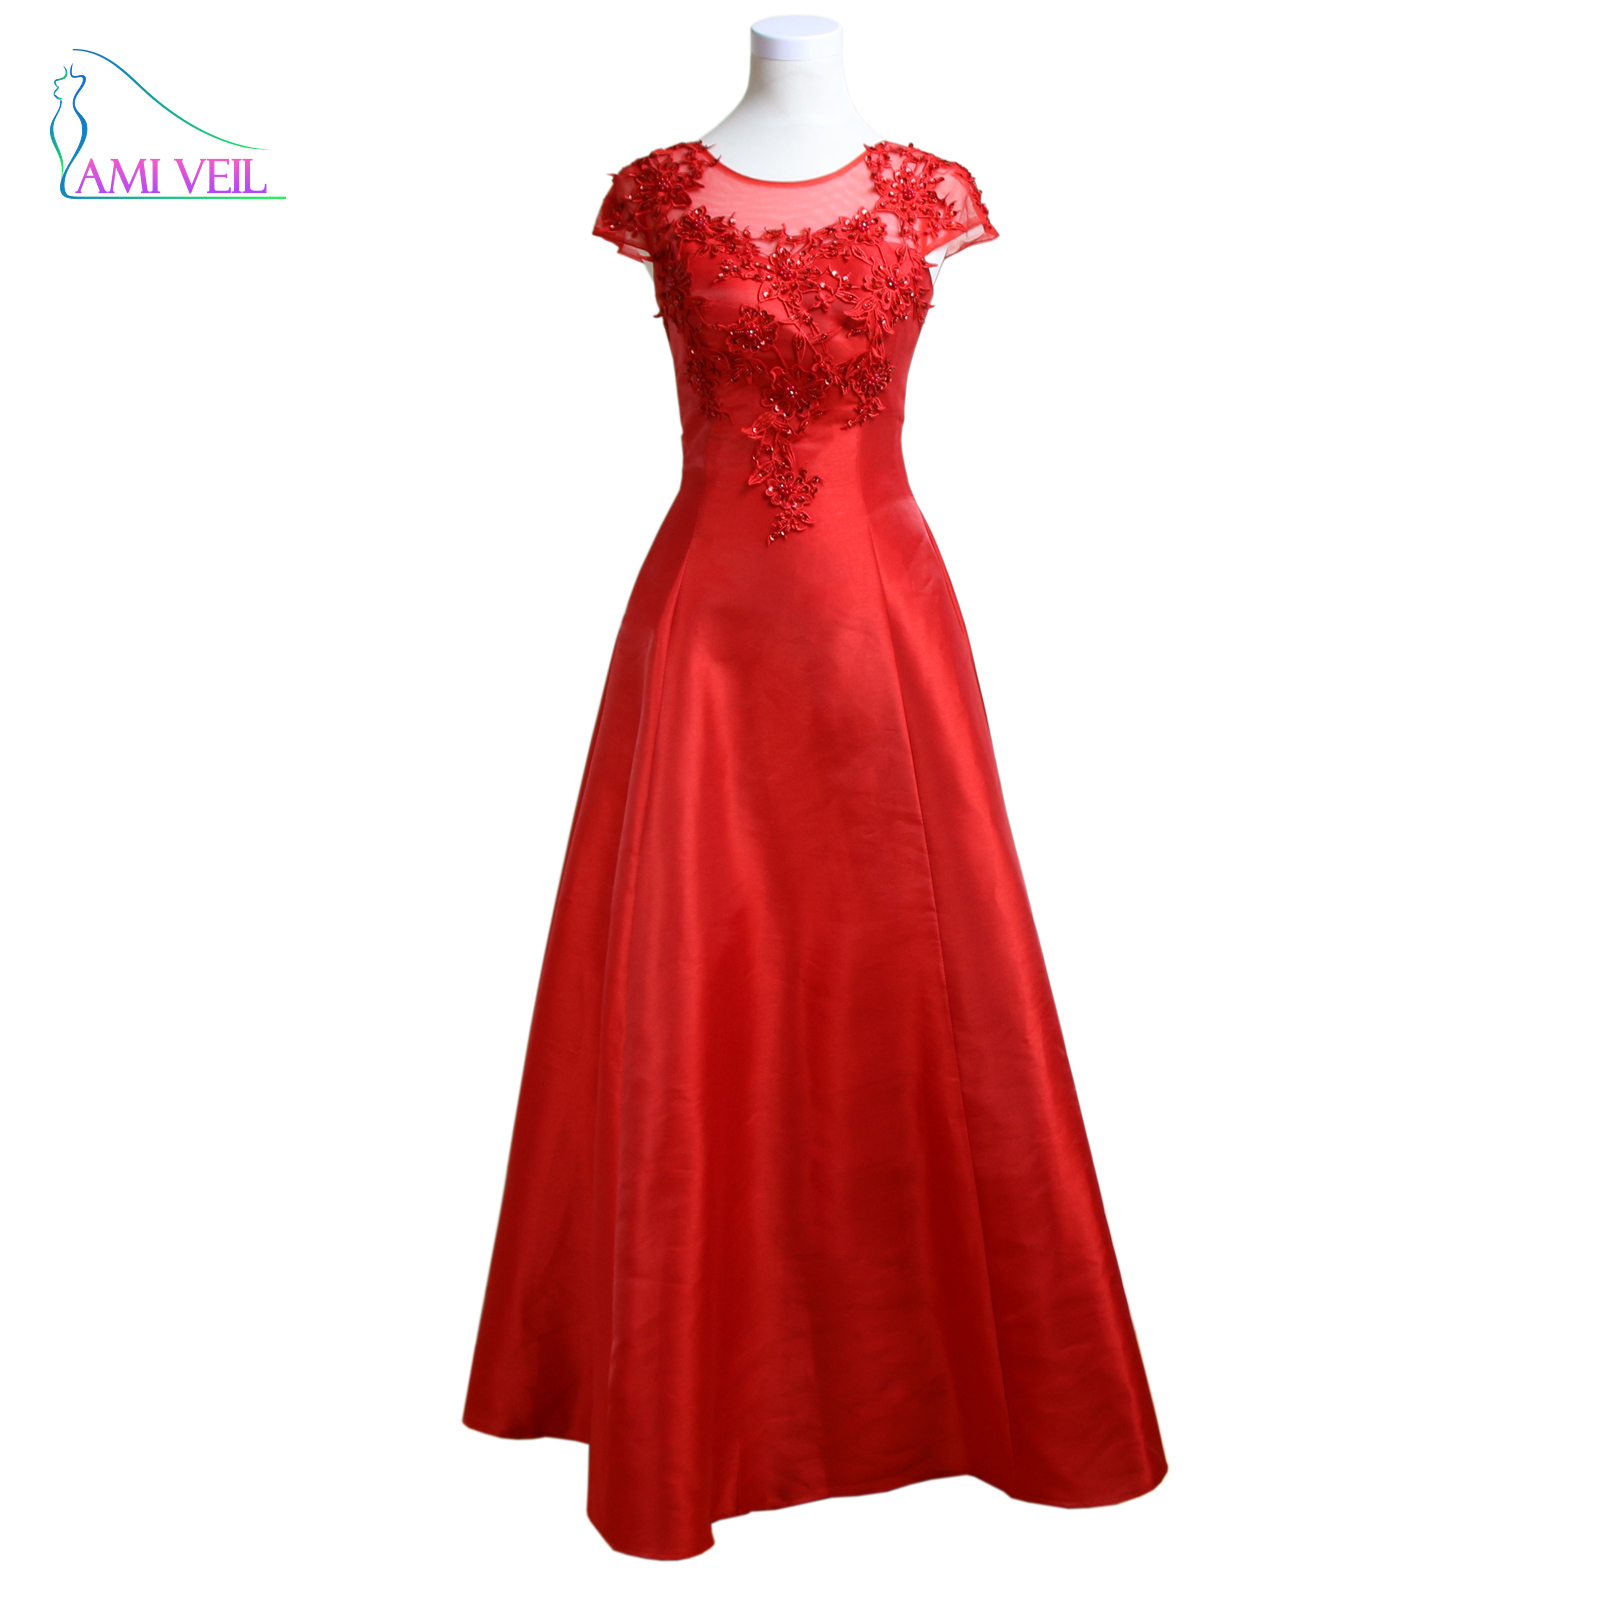 Formal Evening Gowns By Designers: Formal Evening Dresses Red Lace Gowns Prom Long Dress